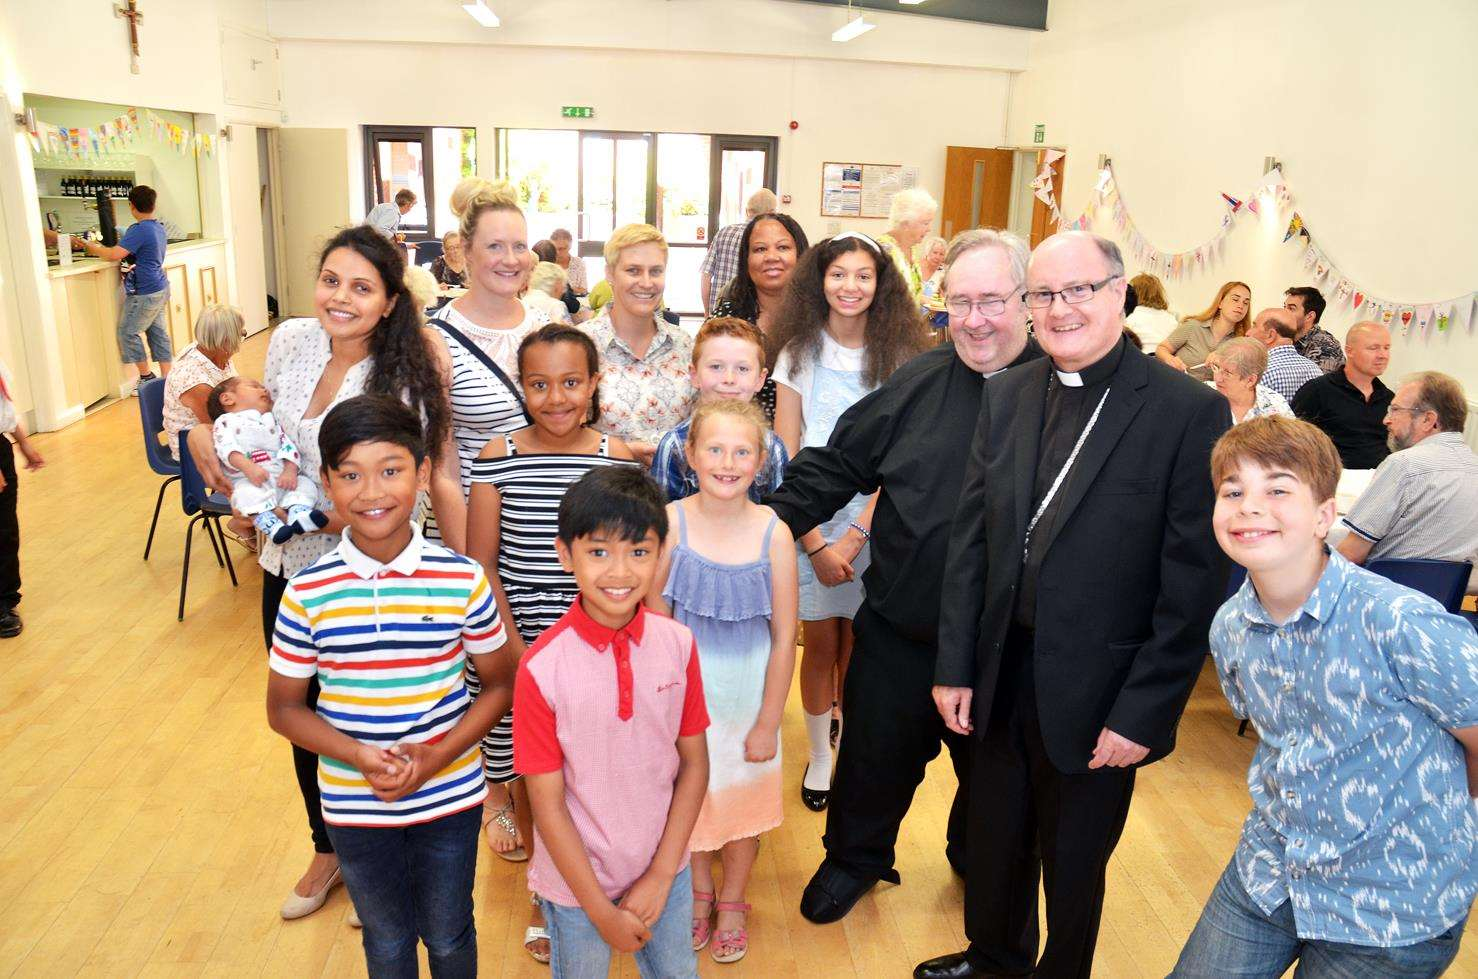 Father Jim Burke and Bishop of Nottingham meet some of congregation after service (010718130SG)